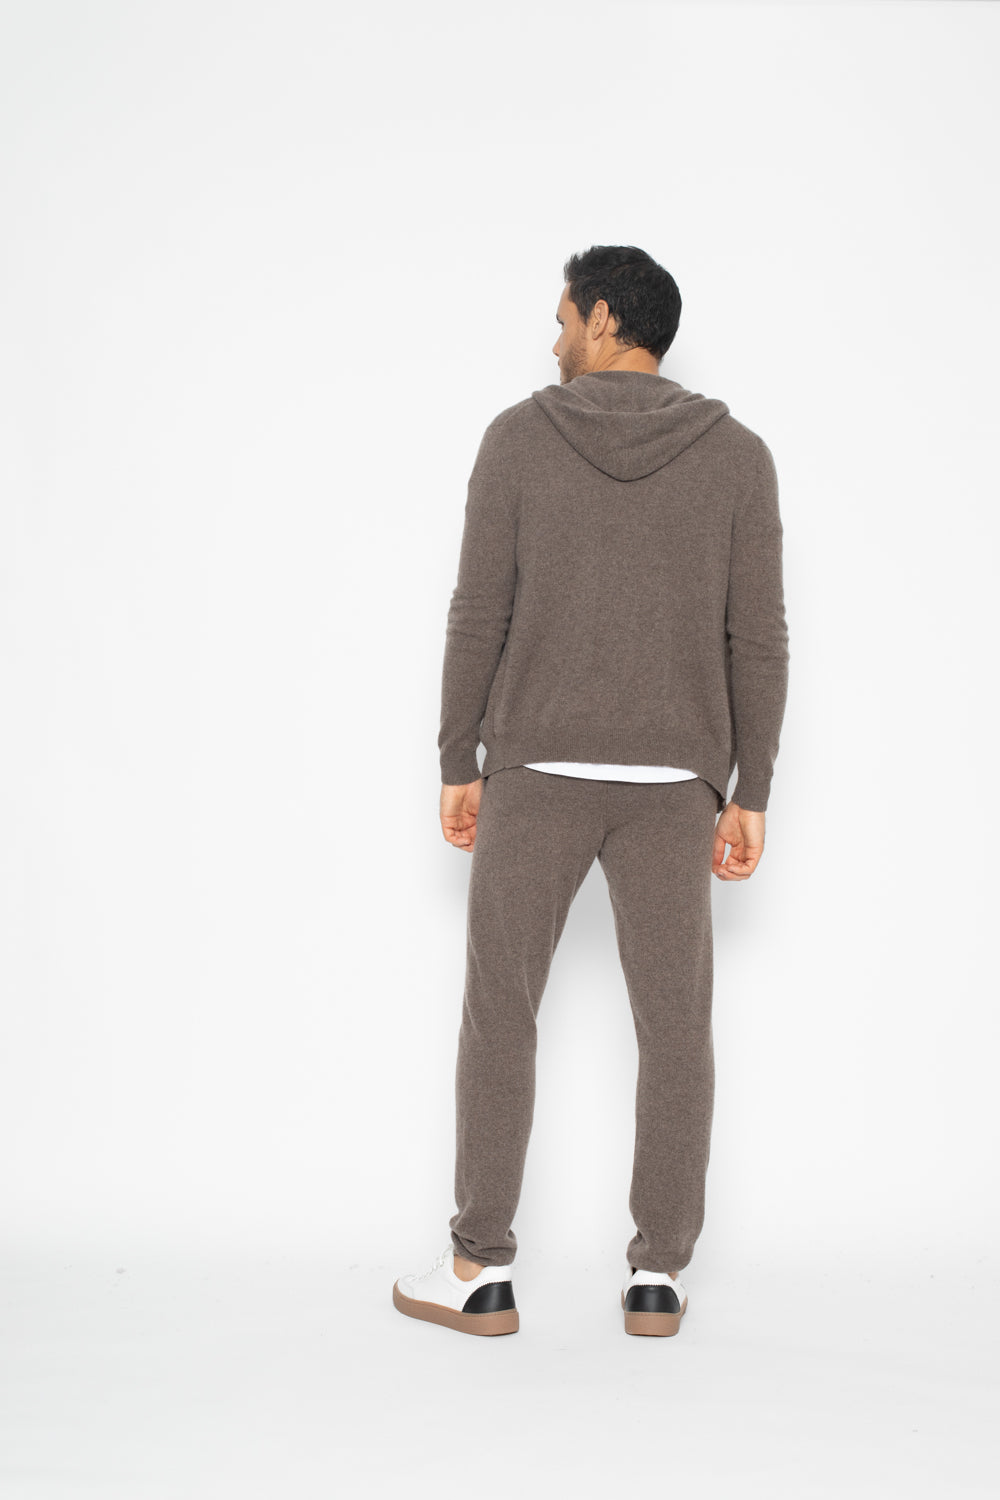 Hoodie neurre Taupe 100% Cachemire